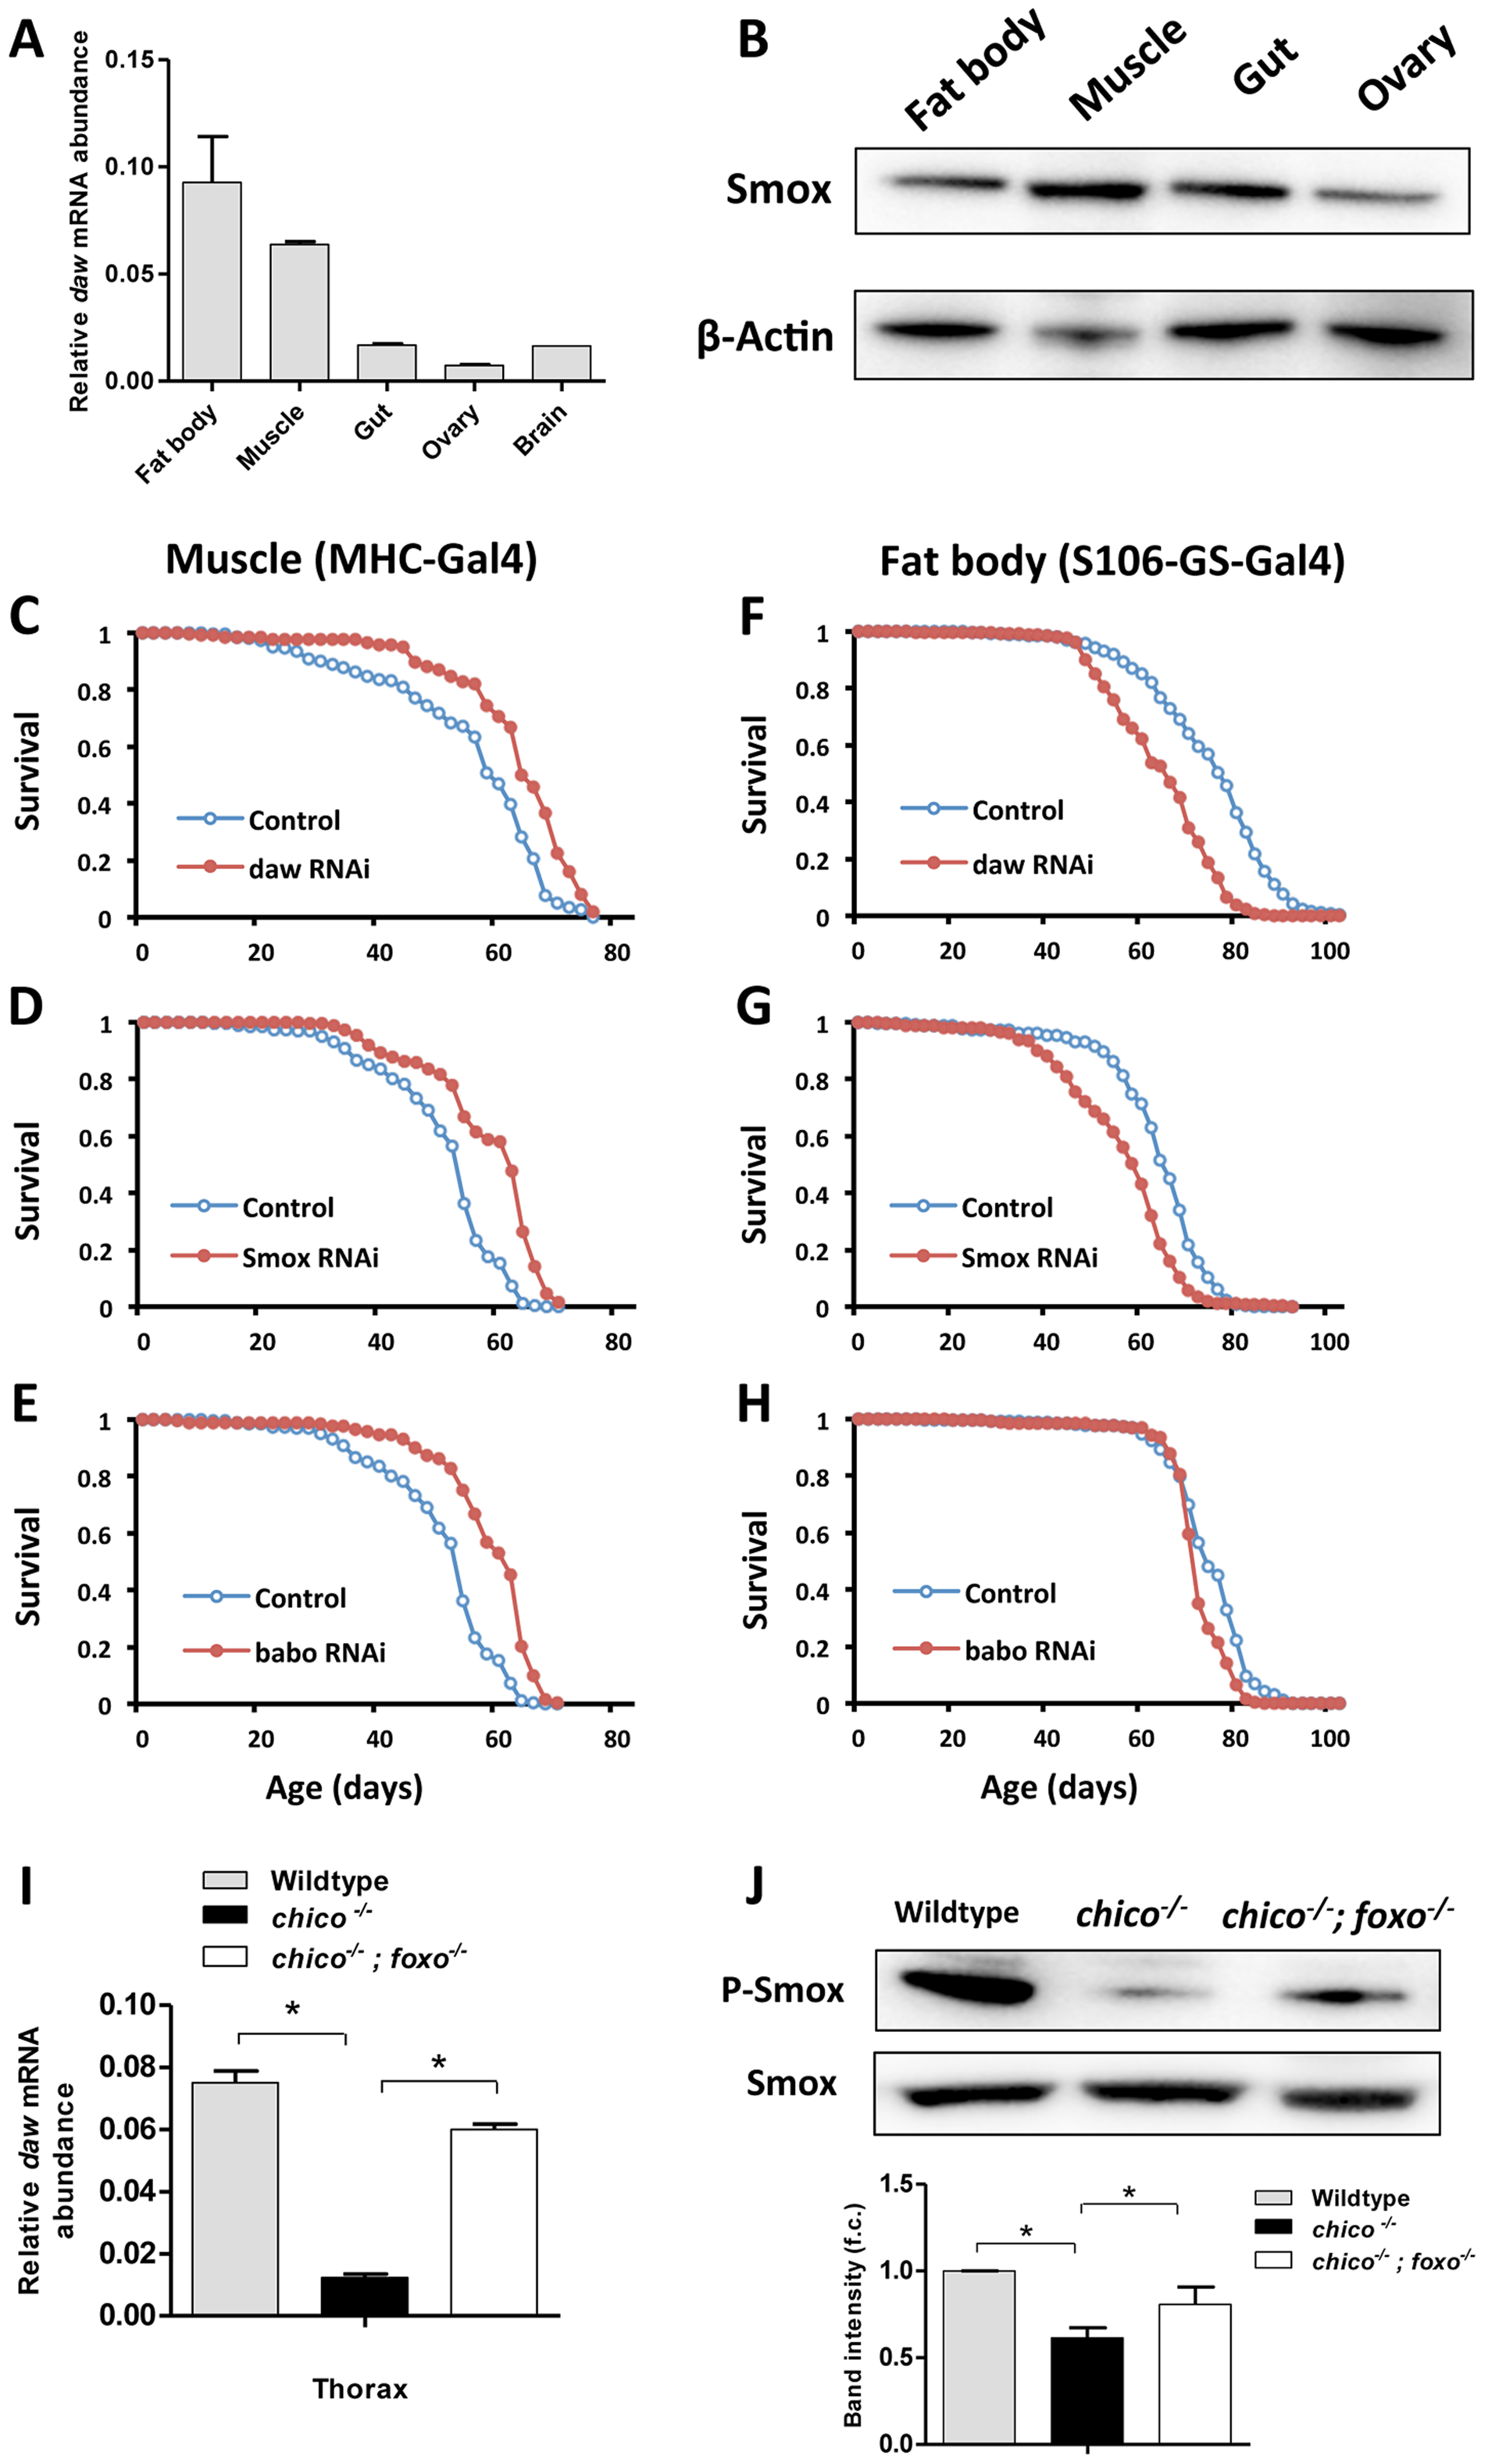 Inactivation of genes in Activin signaling (<i>daw</i>, <i>Smox</i> and <i>babo</i>) in muscle, but not in fat body extended lifespan.